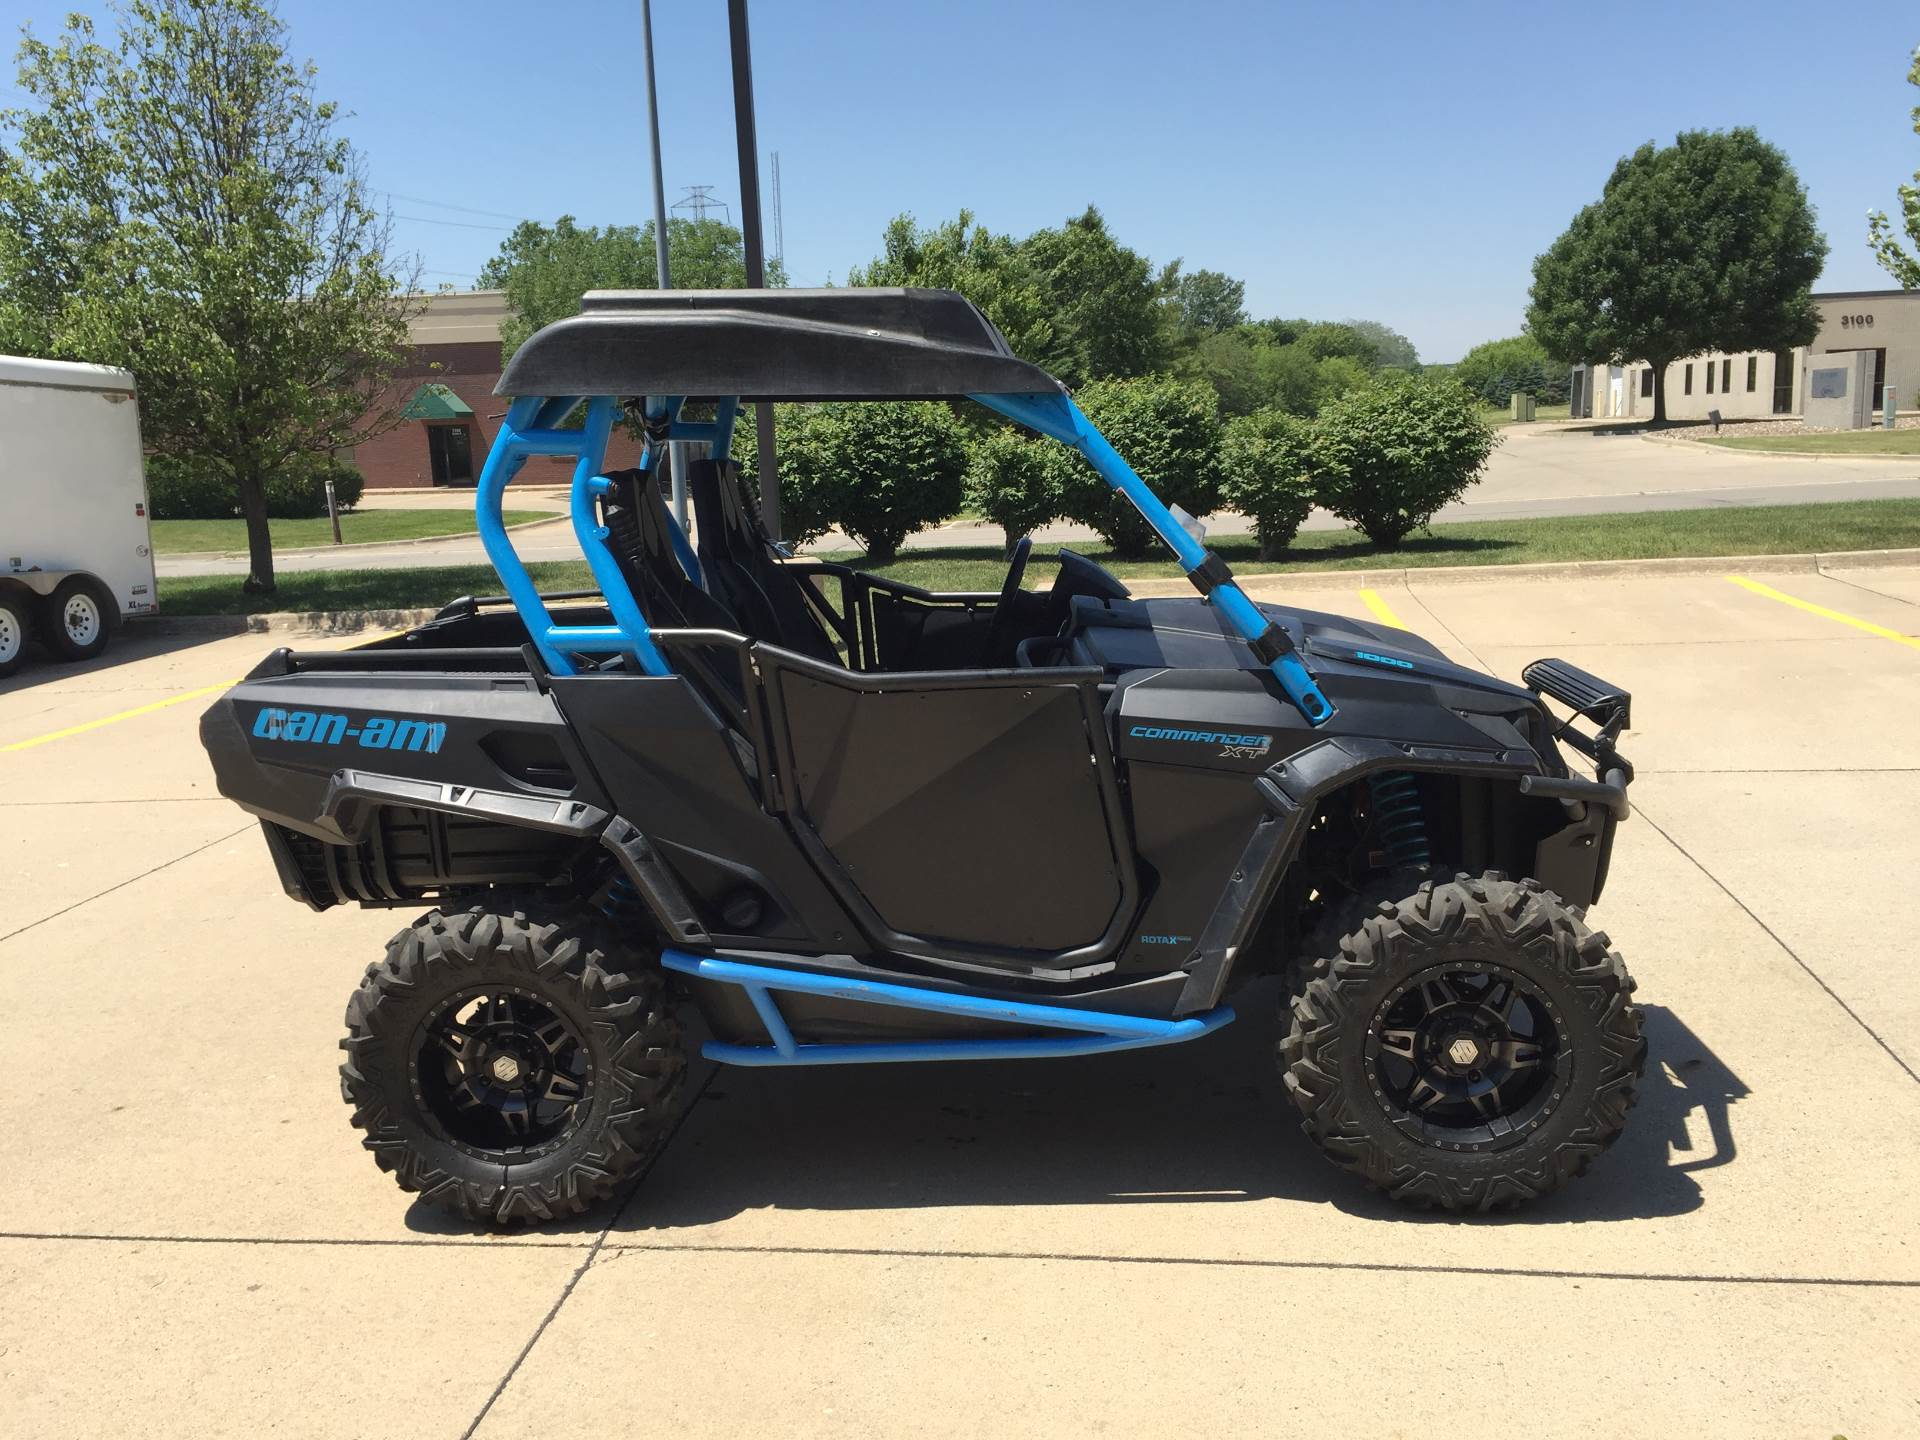 2016 can am commander xt 1000 ebay. Black Bedroom Furniture Sets. Home Design Ideas